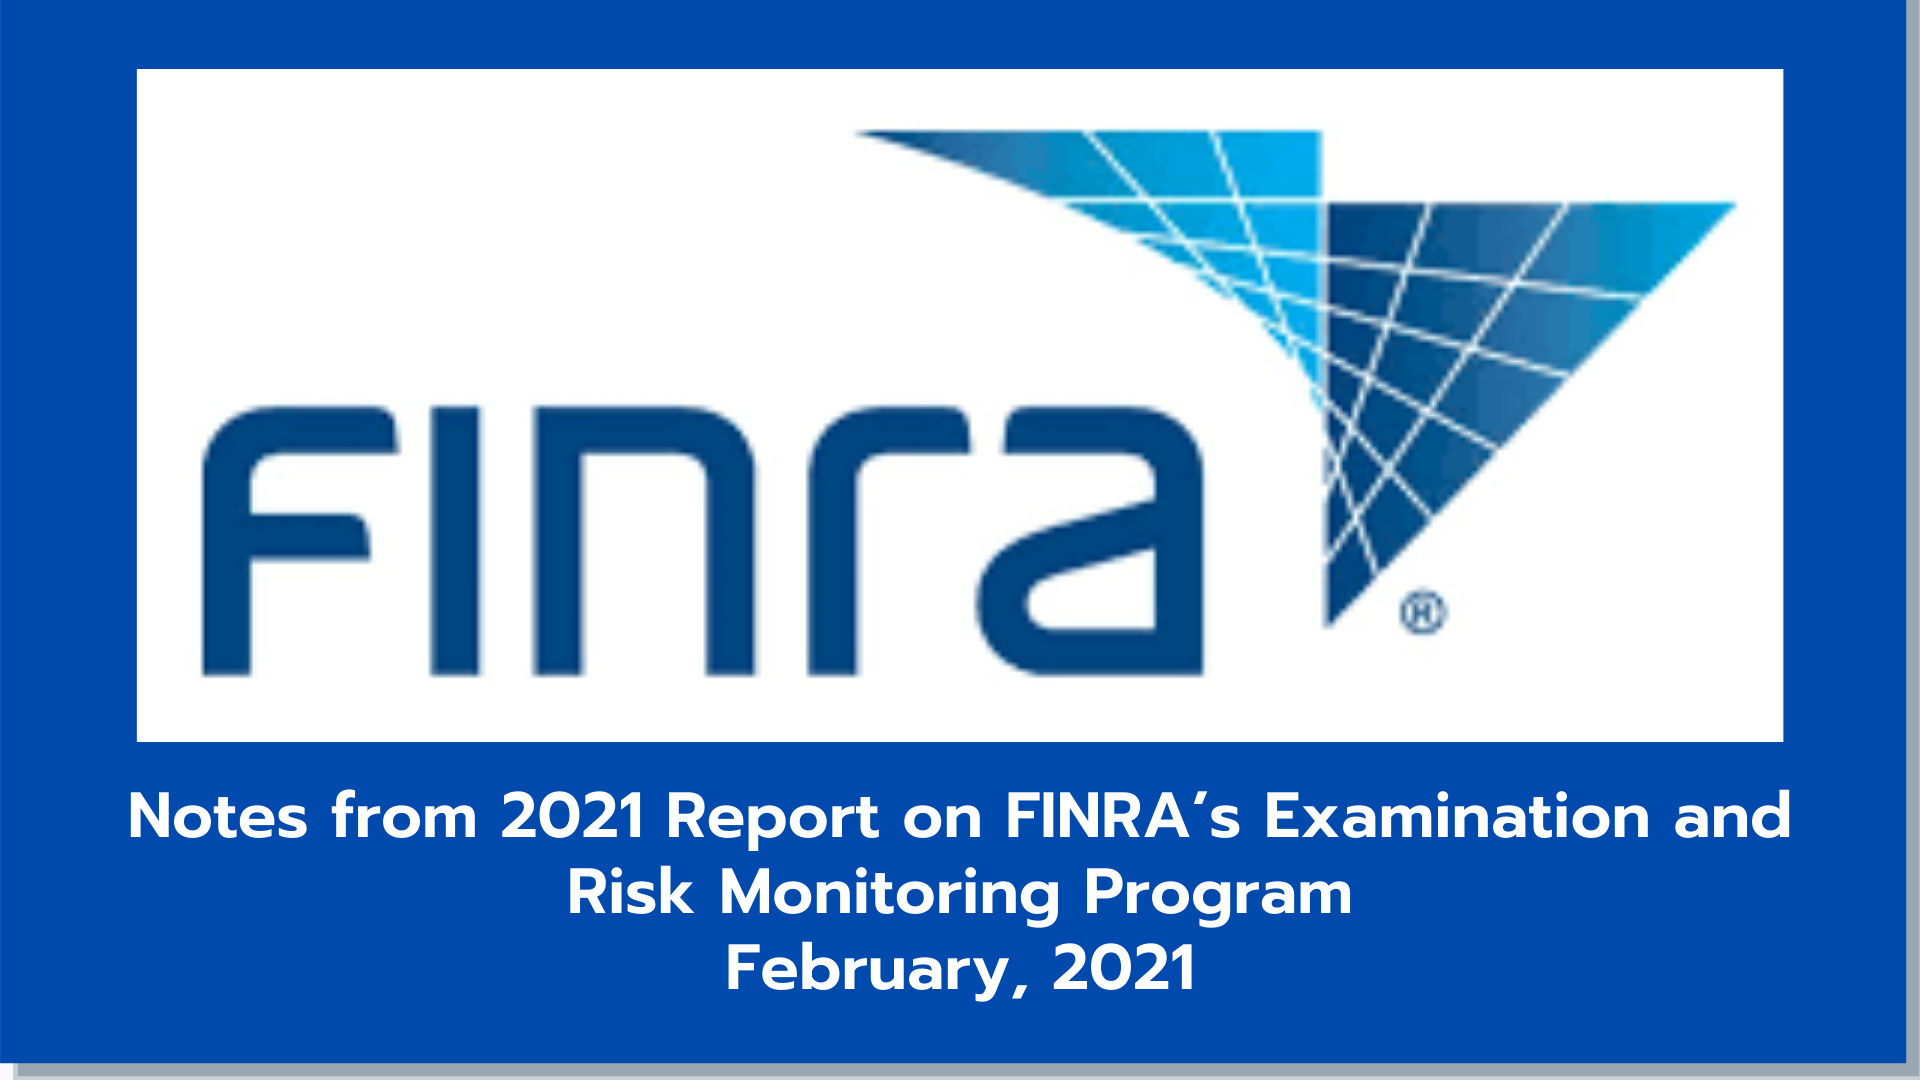 FINRA Risk and Examination Alert